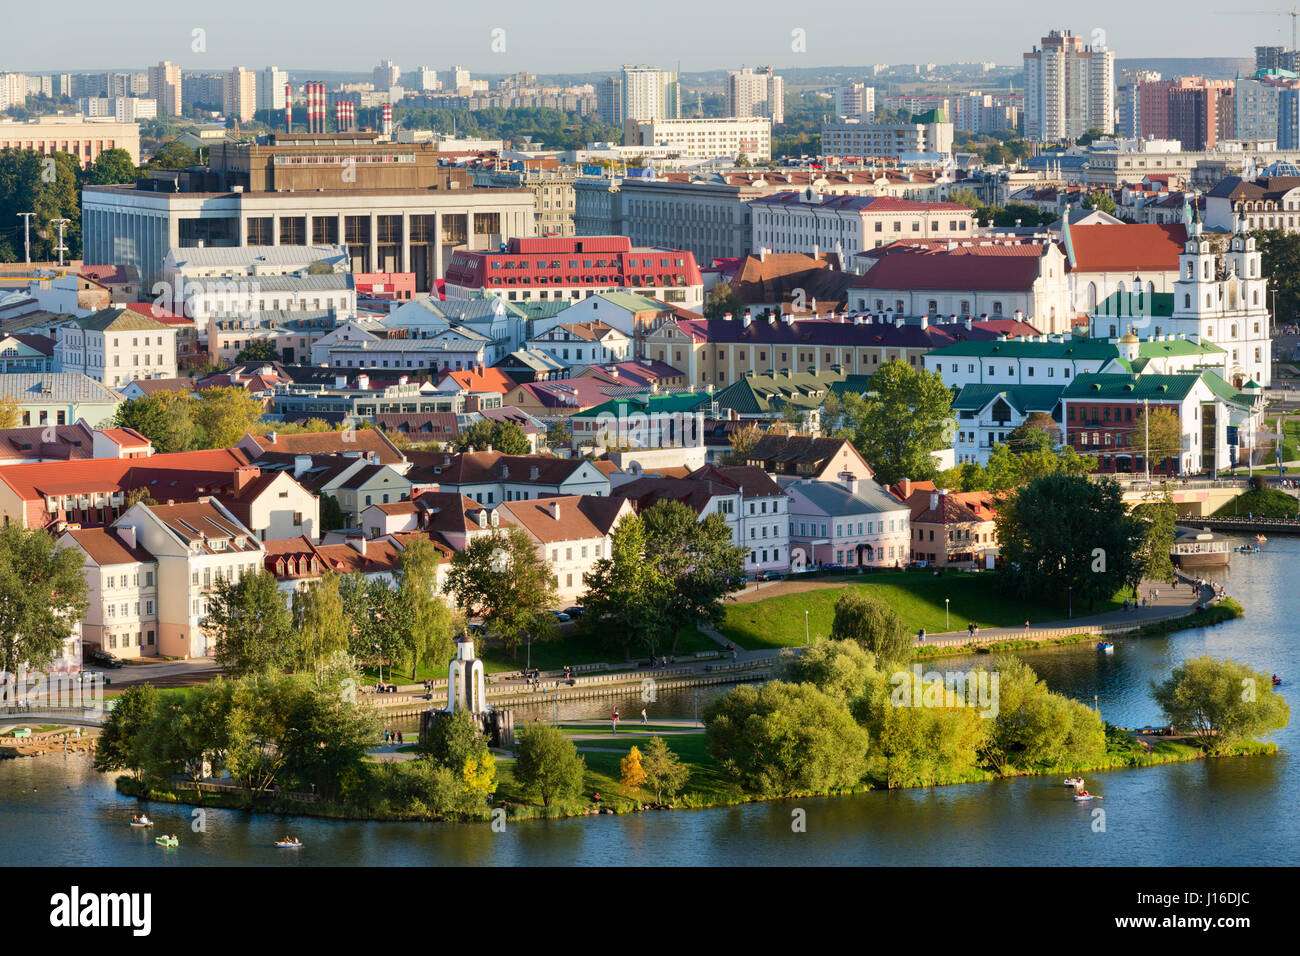 Aerial panoramic view of central streets of Minsk city on summer seaon, Belarus Republic - Stock Image